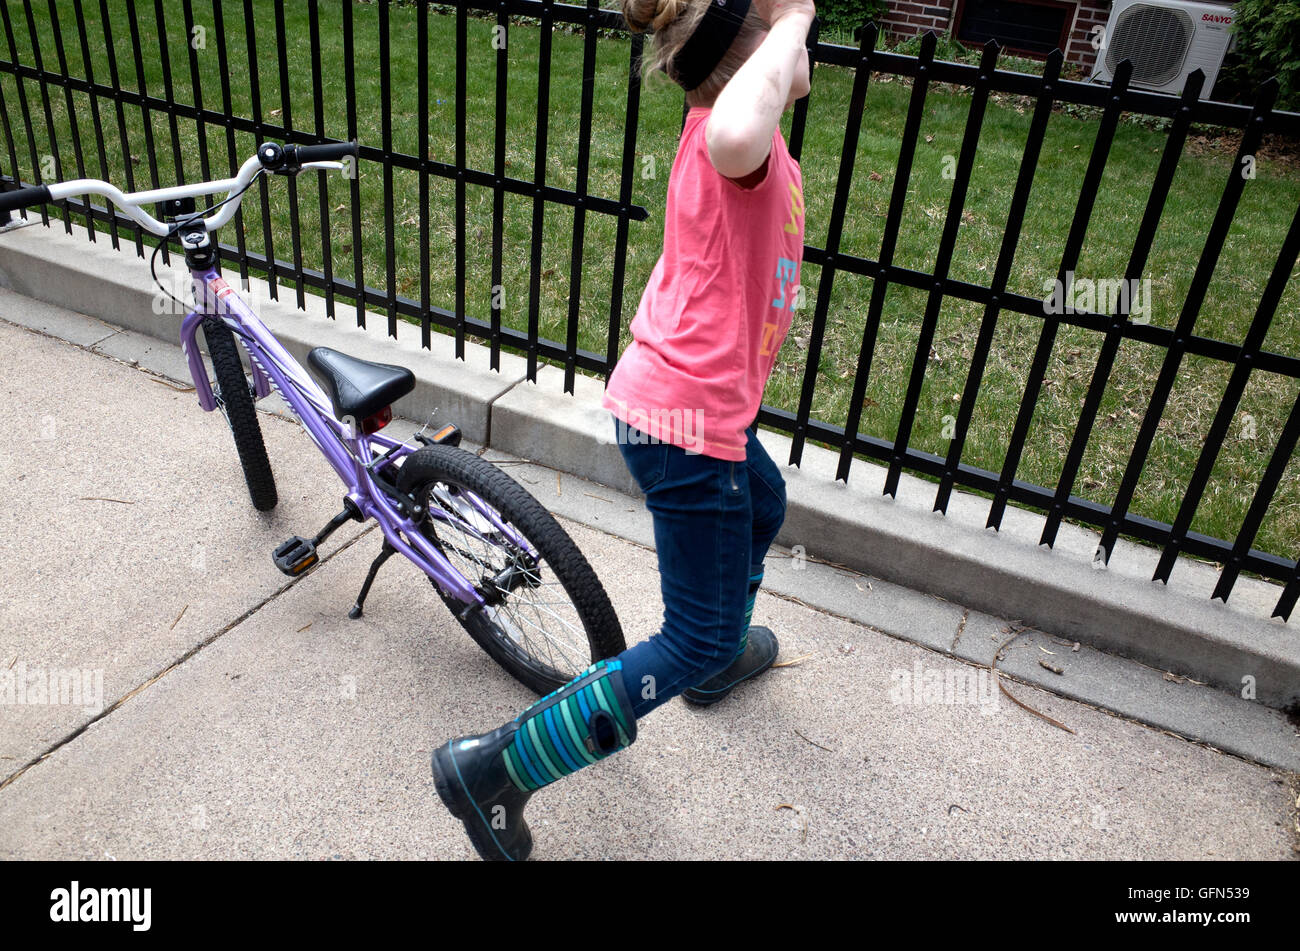 Young girl impulsively leaps off bicycle and runs toward fence. Why? it's just what kids do. St Paul Minnesota - Stock Image